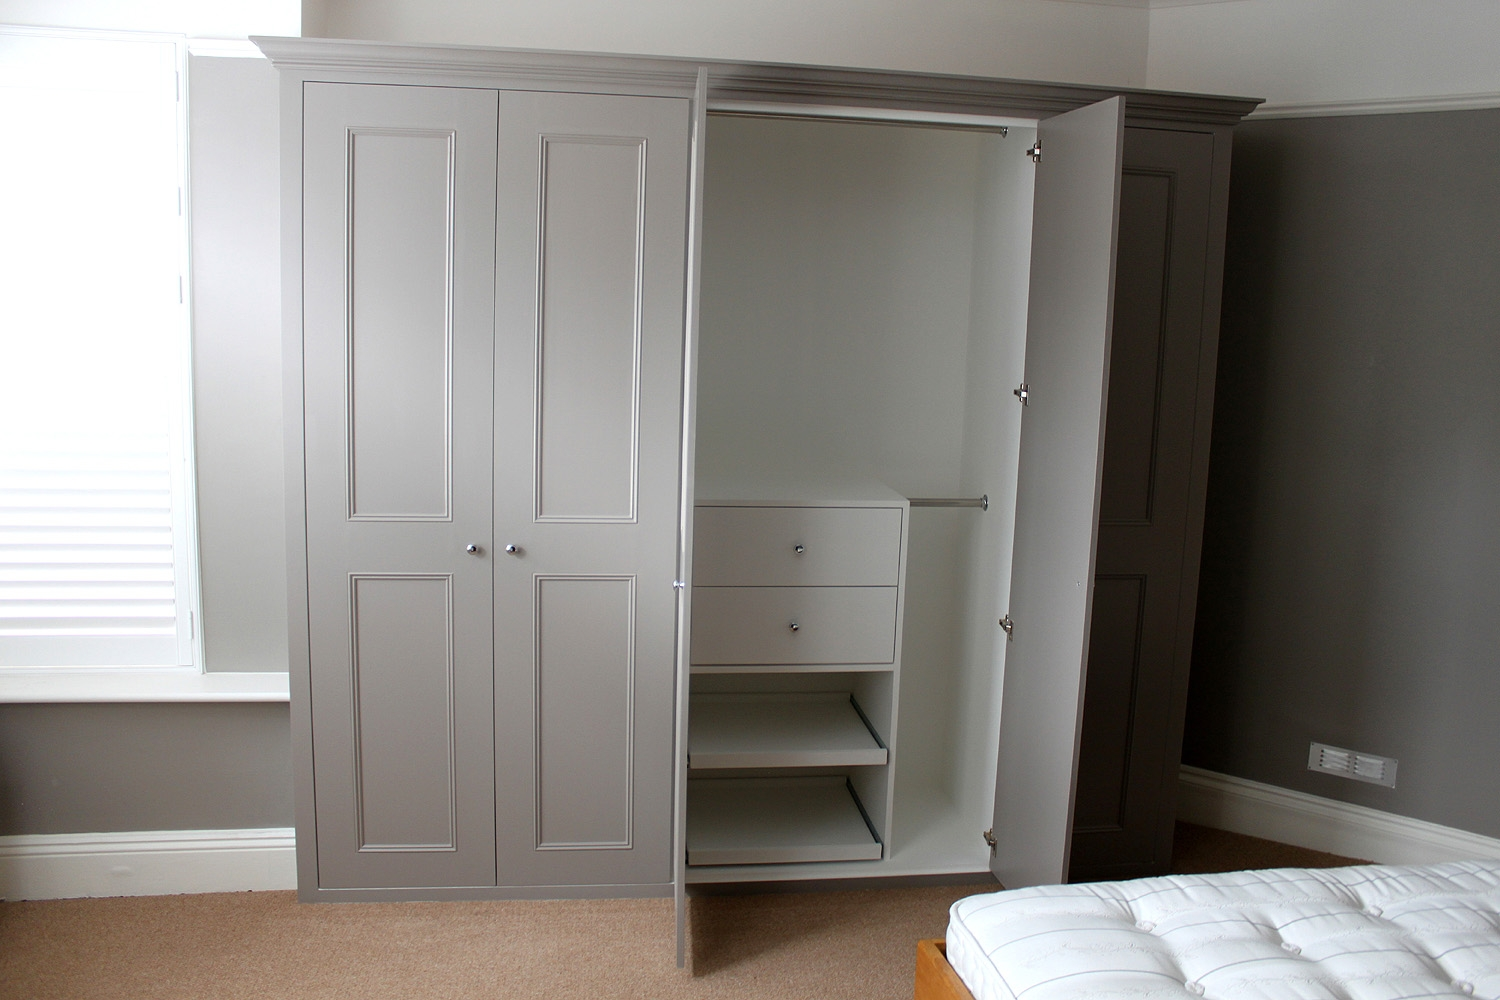 Fitted Sliding Wardrobes Excellent Mirrored Fitted Wardrobes Regarding Solid Wood Fitted Wardrobes (View 9 of 15)